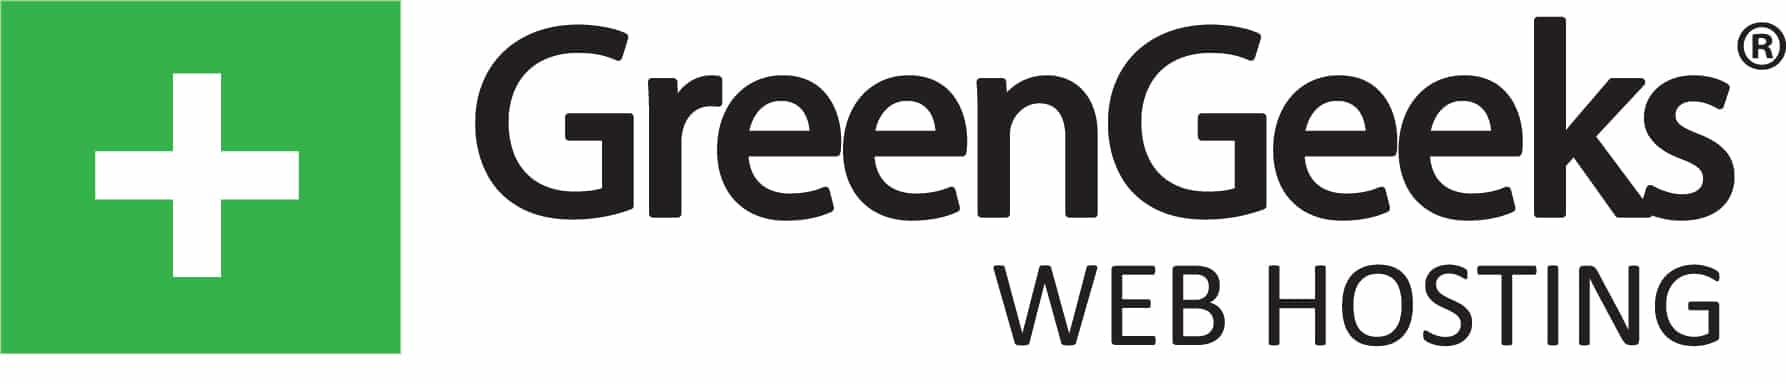 Greengeek web hosting